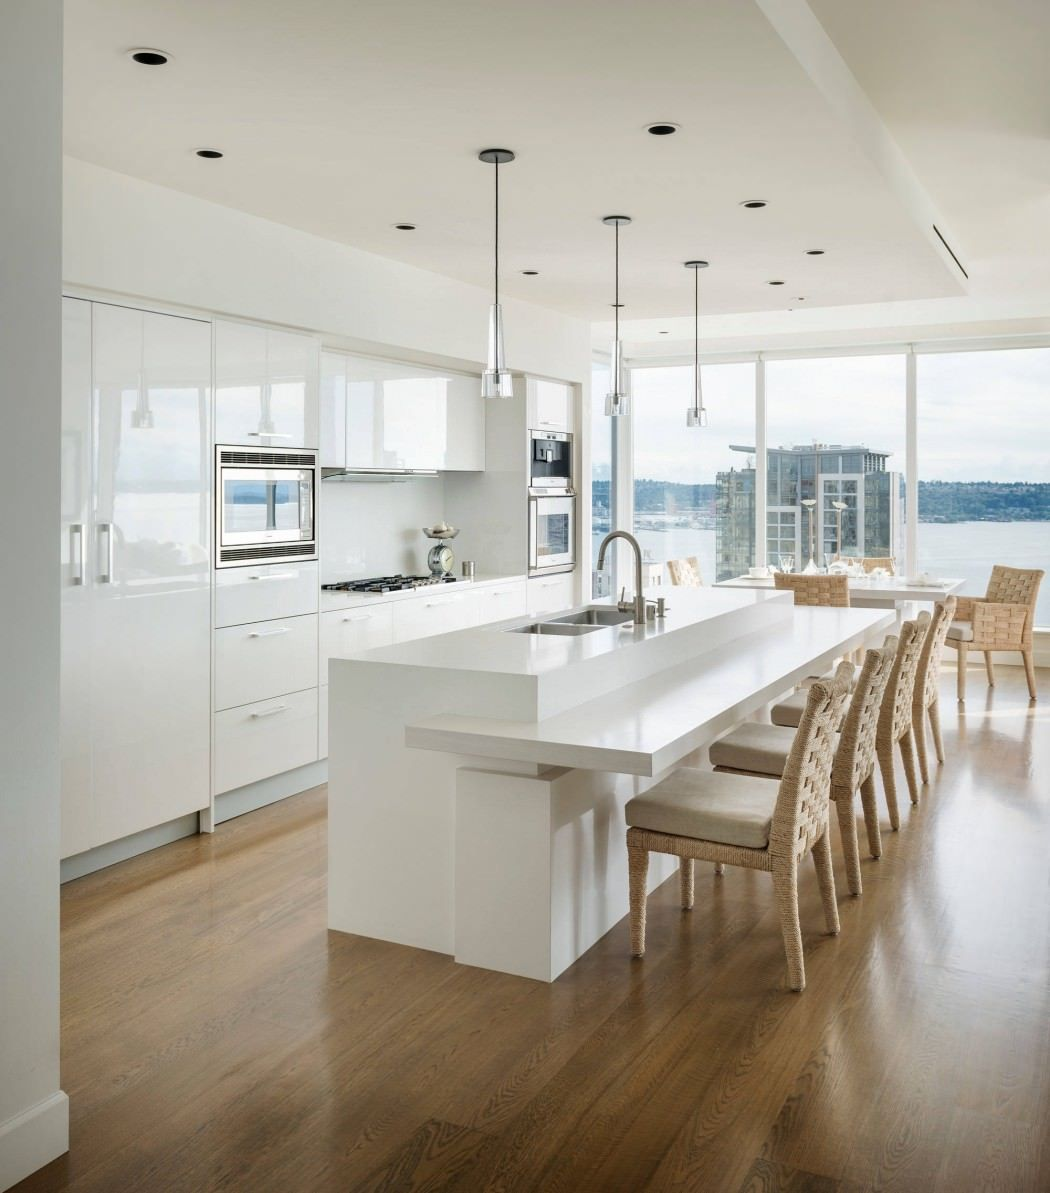 High Gloss Kitchen Island: White Wash By Christian Grevstad